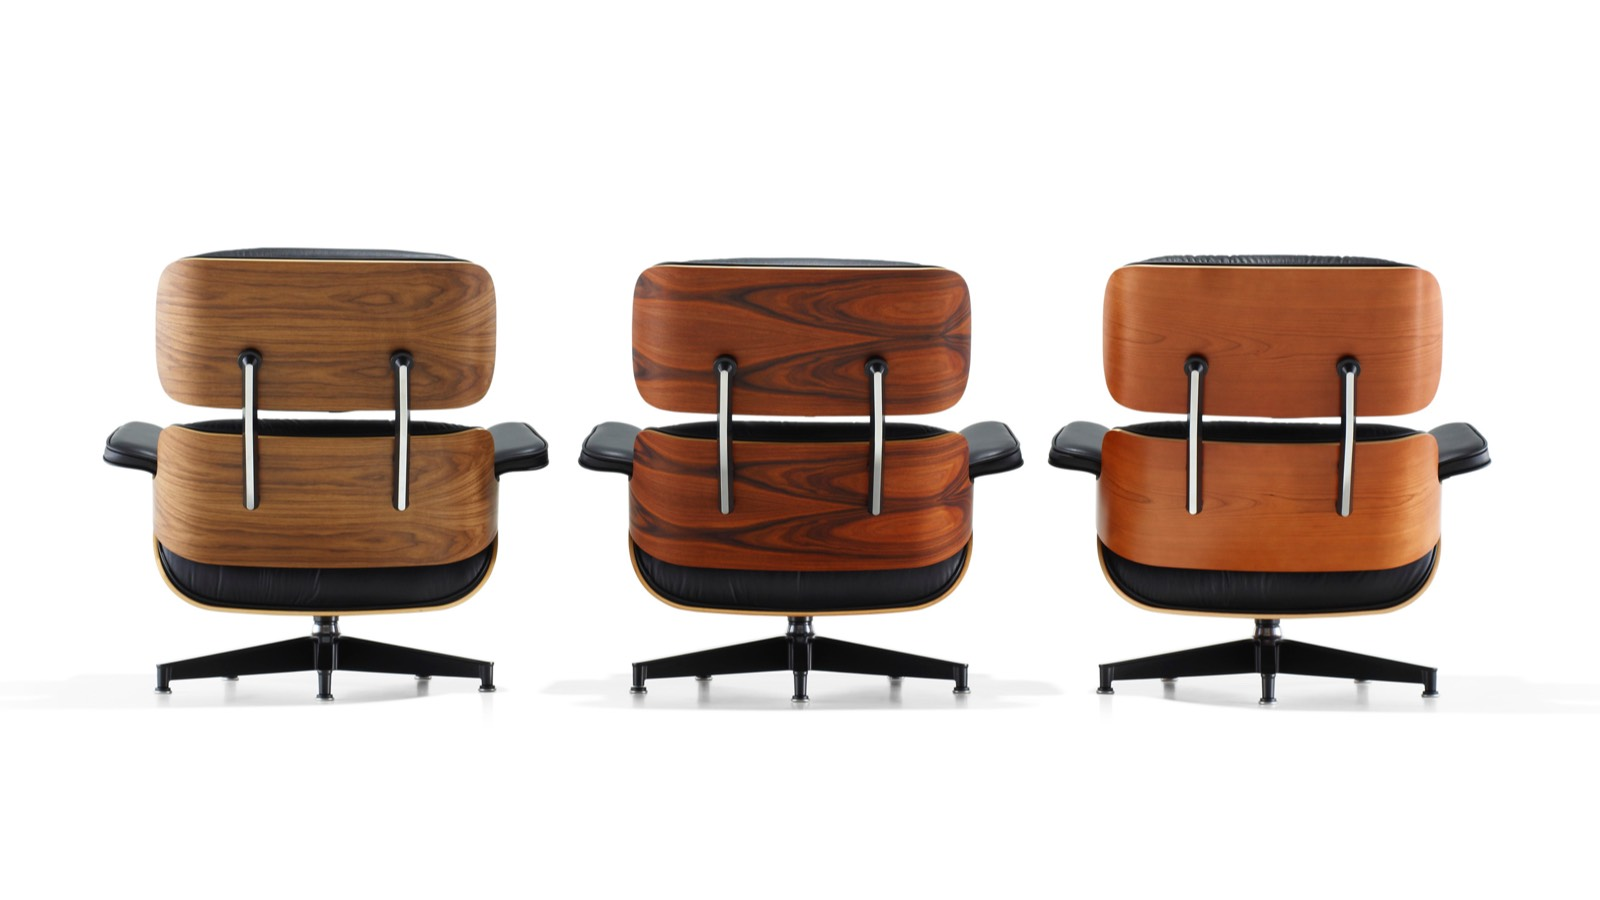 Three Eames Lounge Chairs, each with a different wood veneer finish, viewed from the rear.